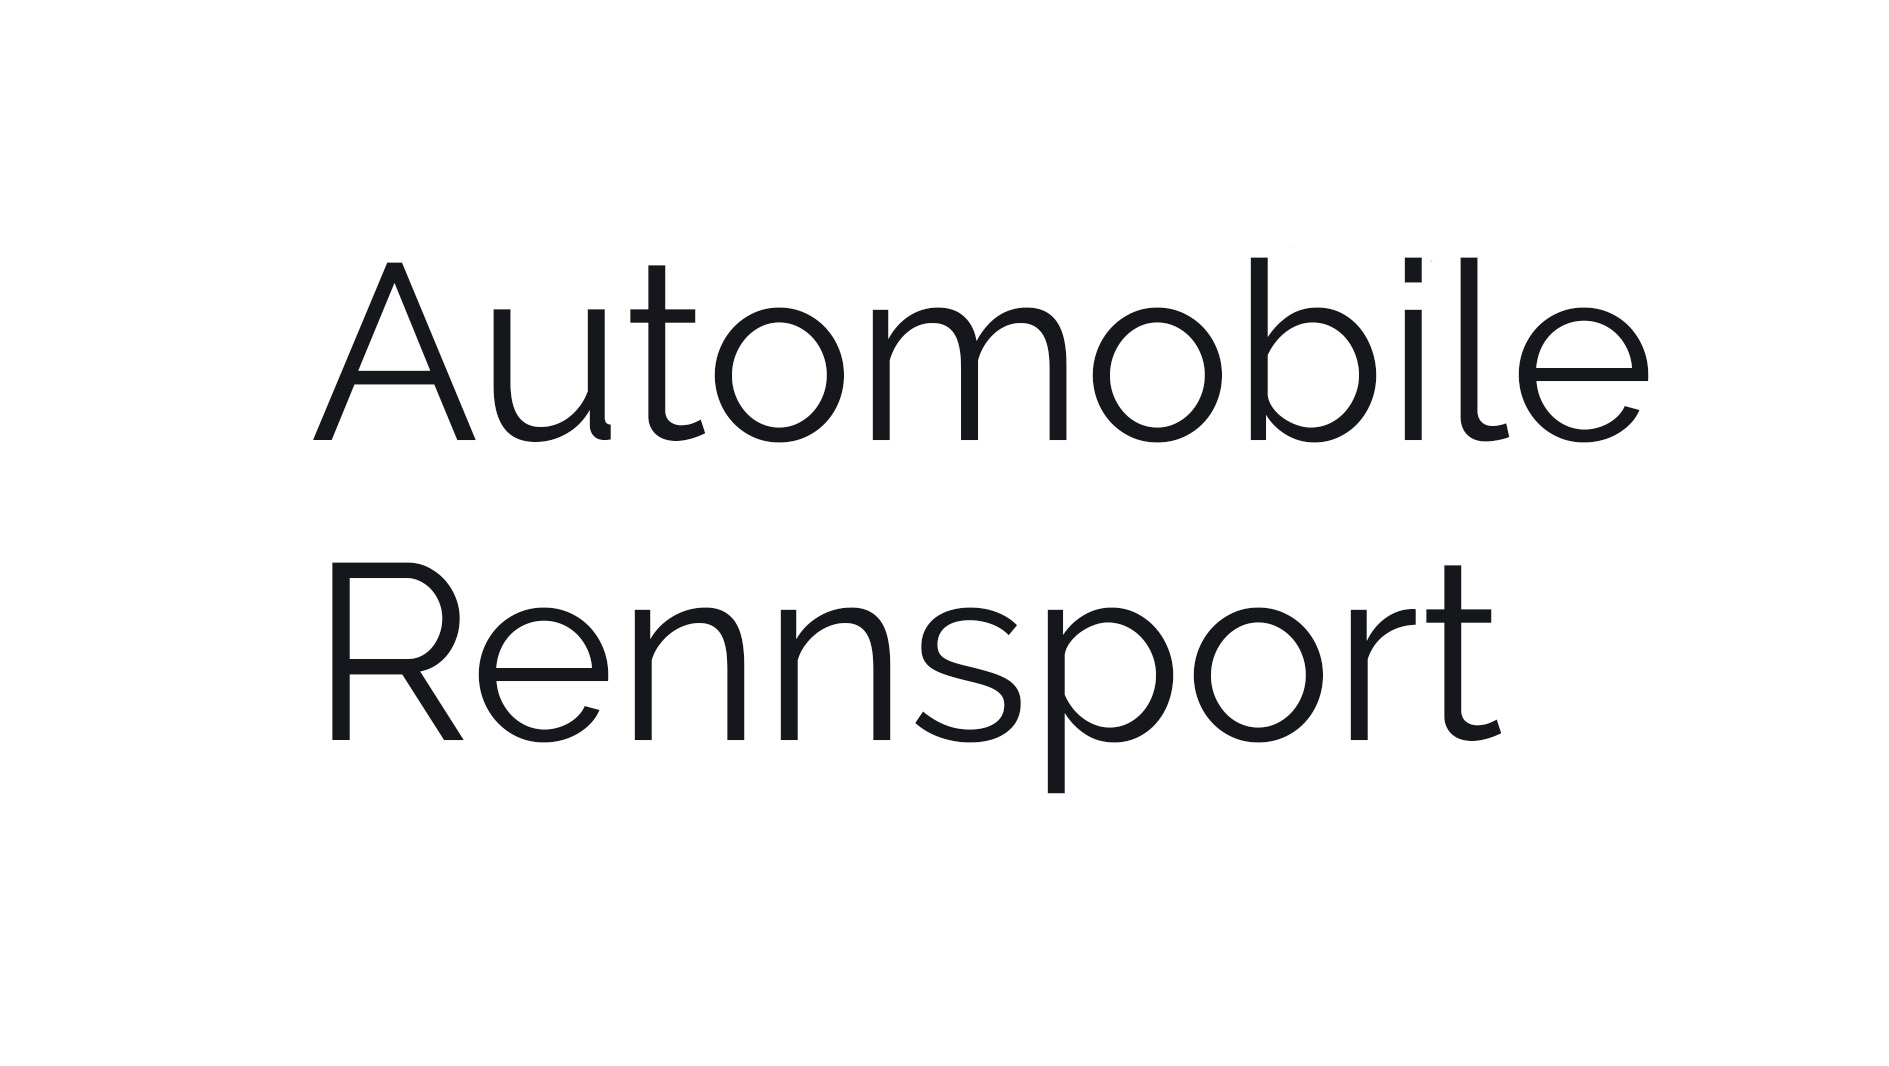 button-text-automobile-rennsport